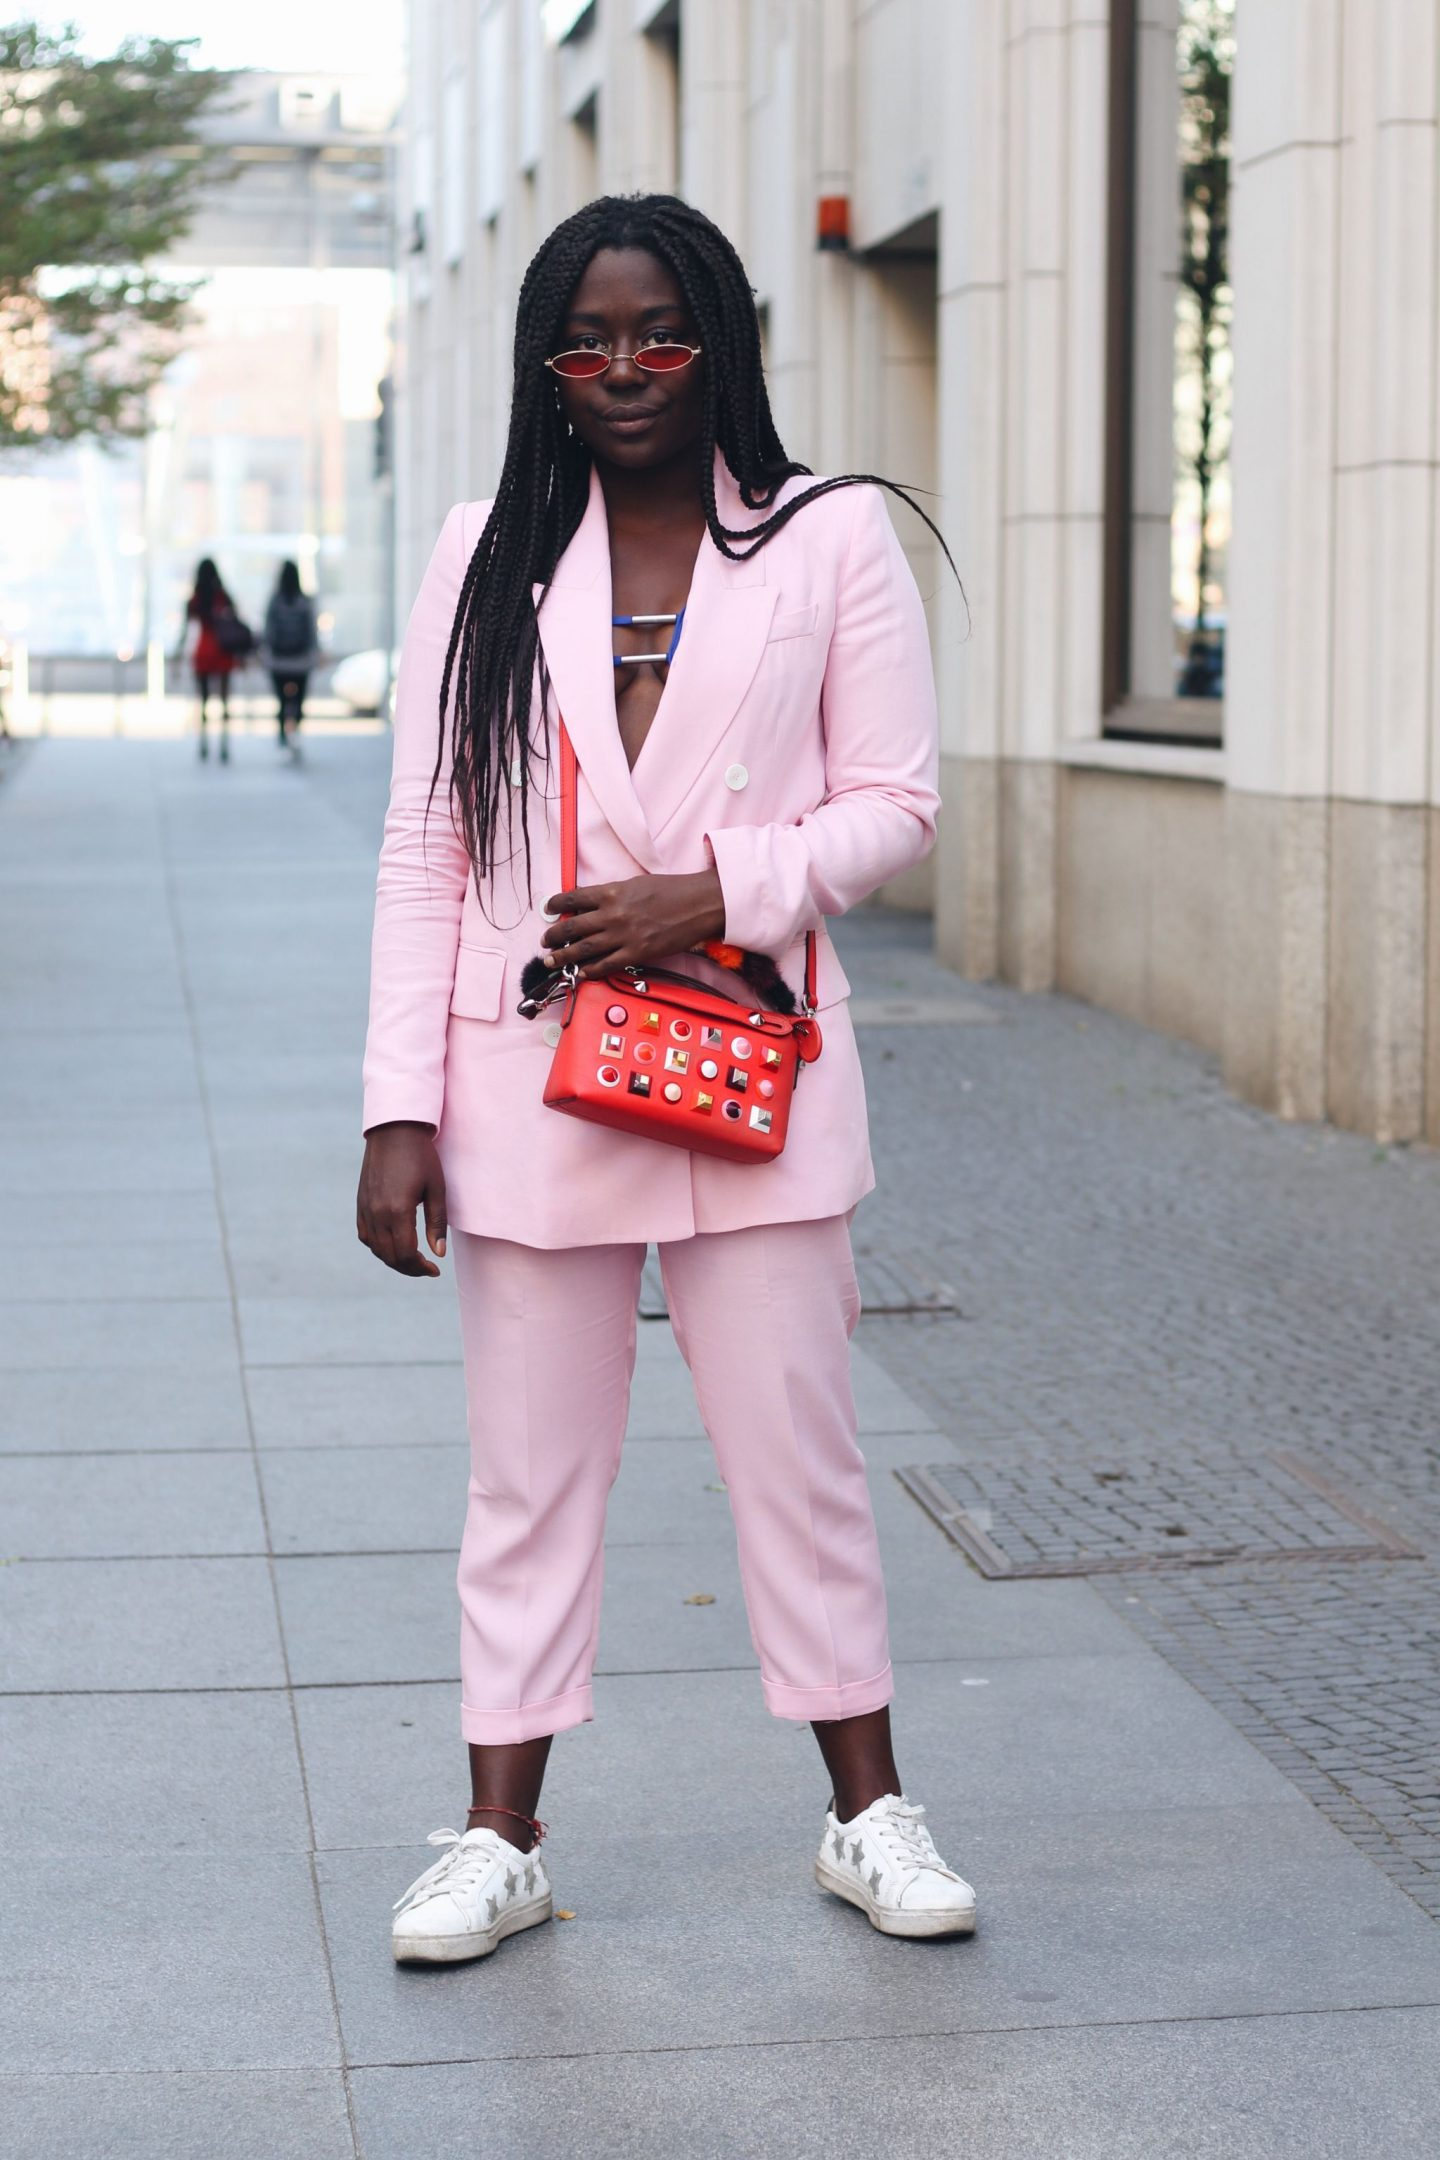 Lois_Opoku_pink_suit_fendi_by_the_way_bag_fasion_week_street_style_lisforlois